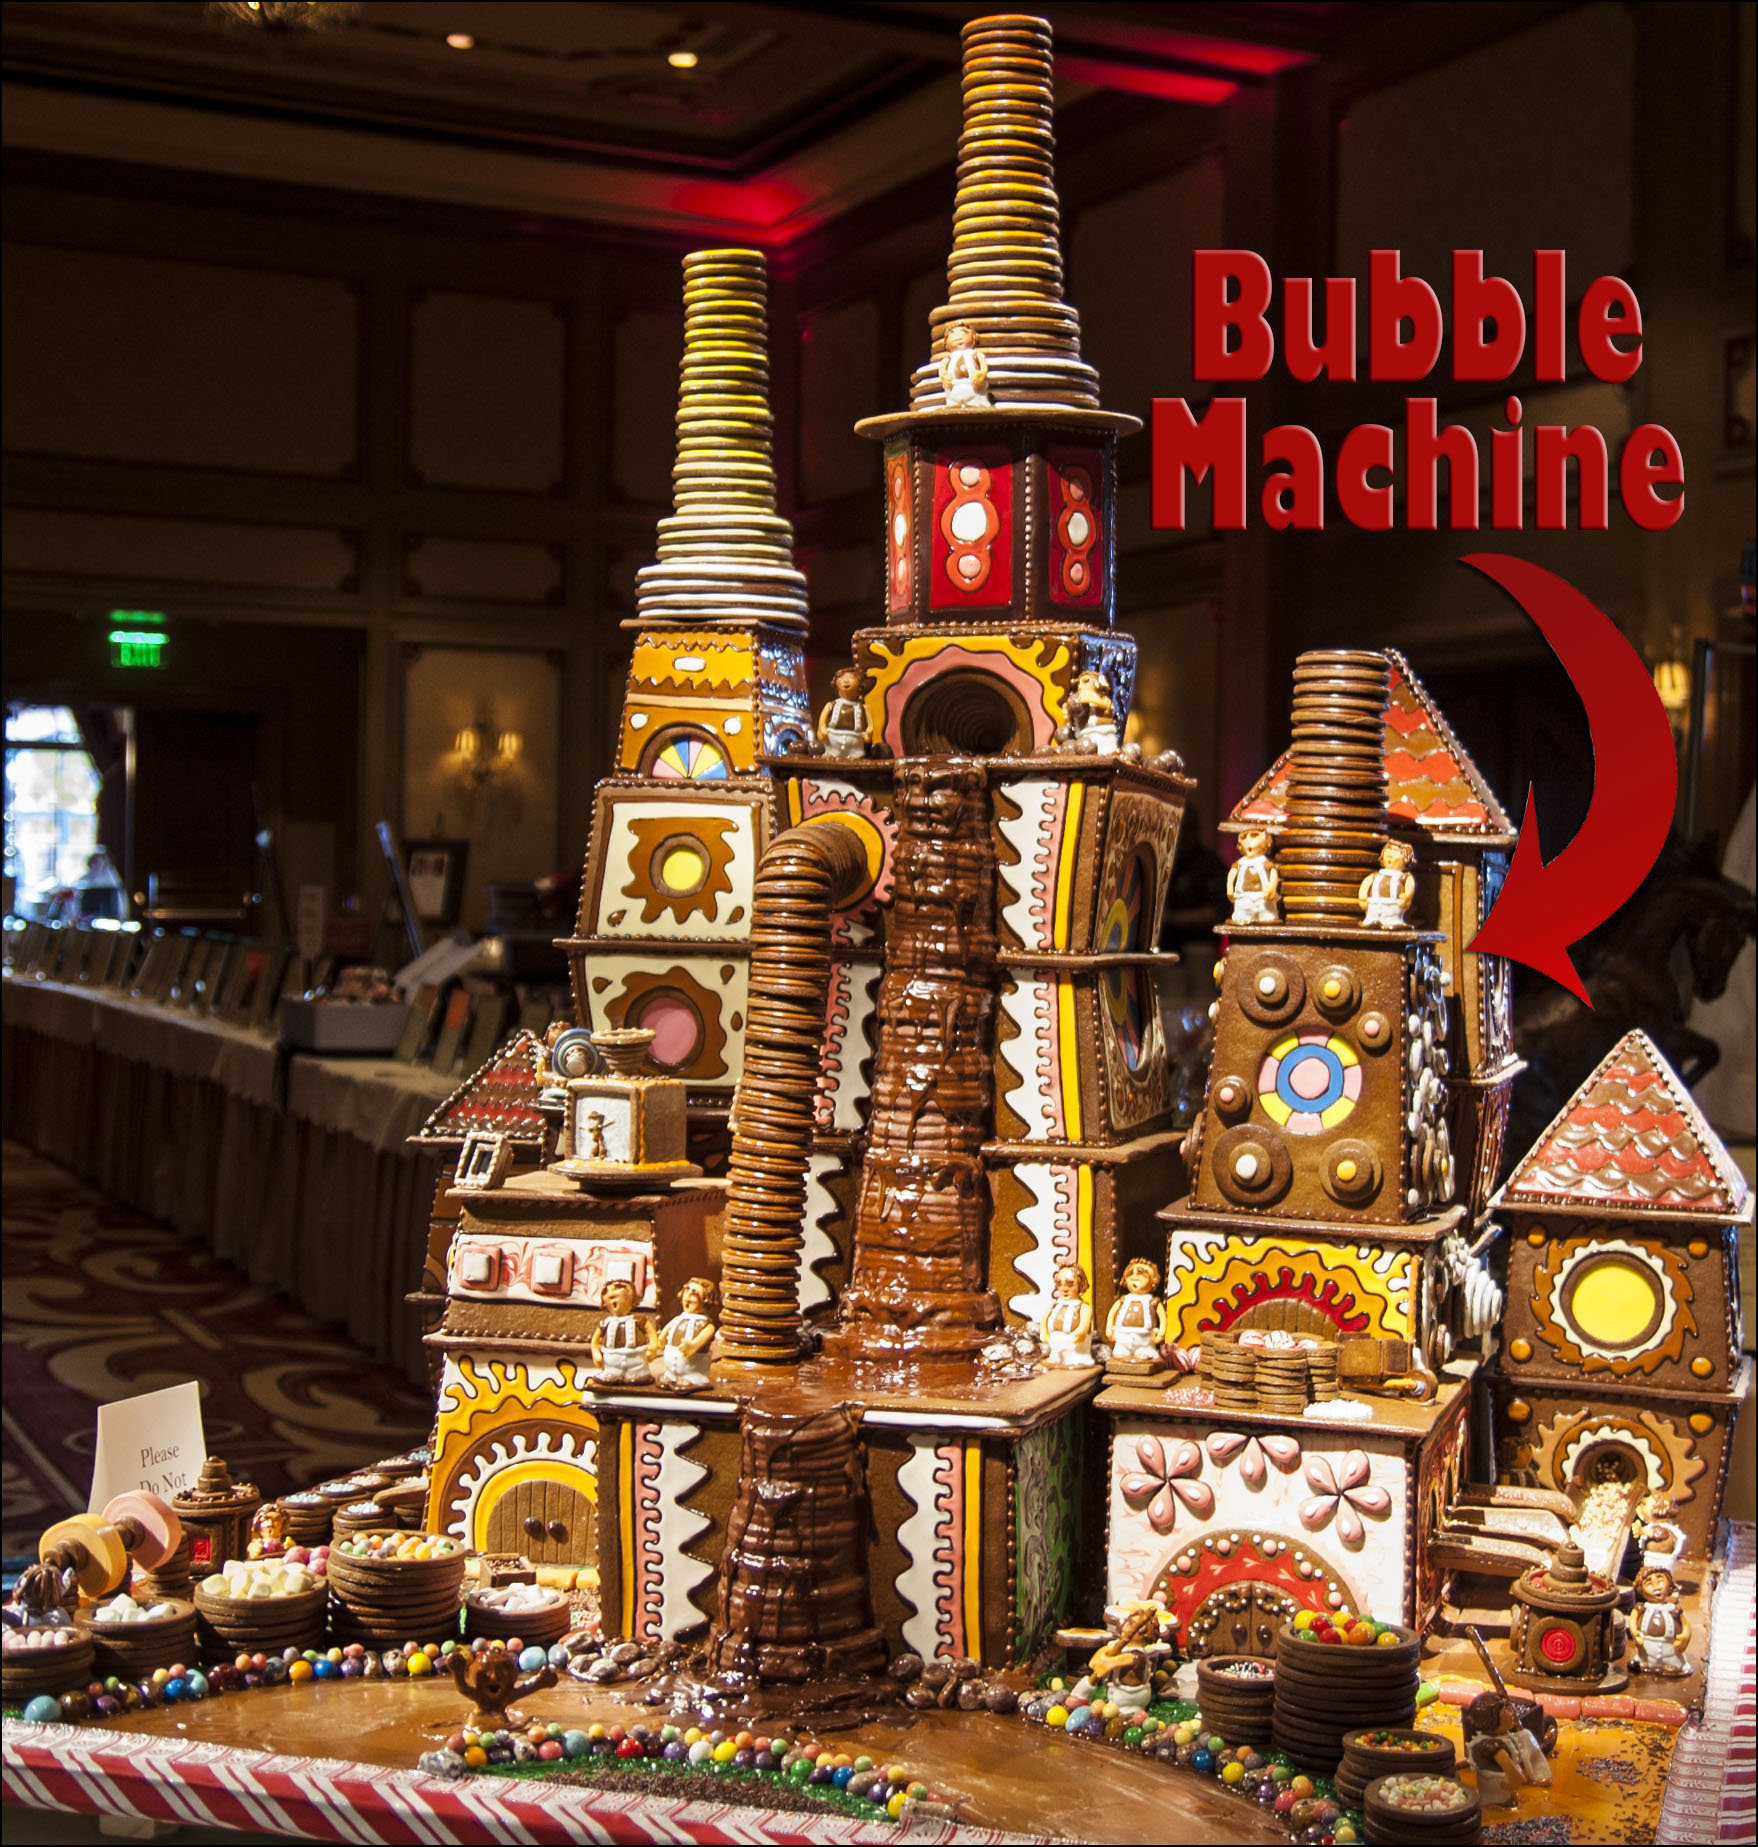 Gingerbread House Bubble Machine